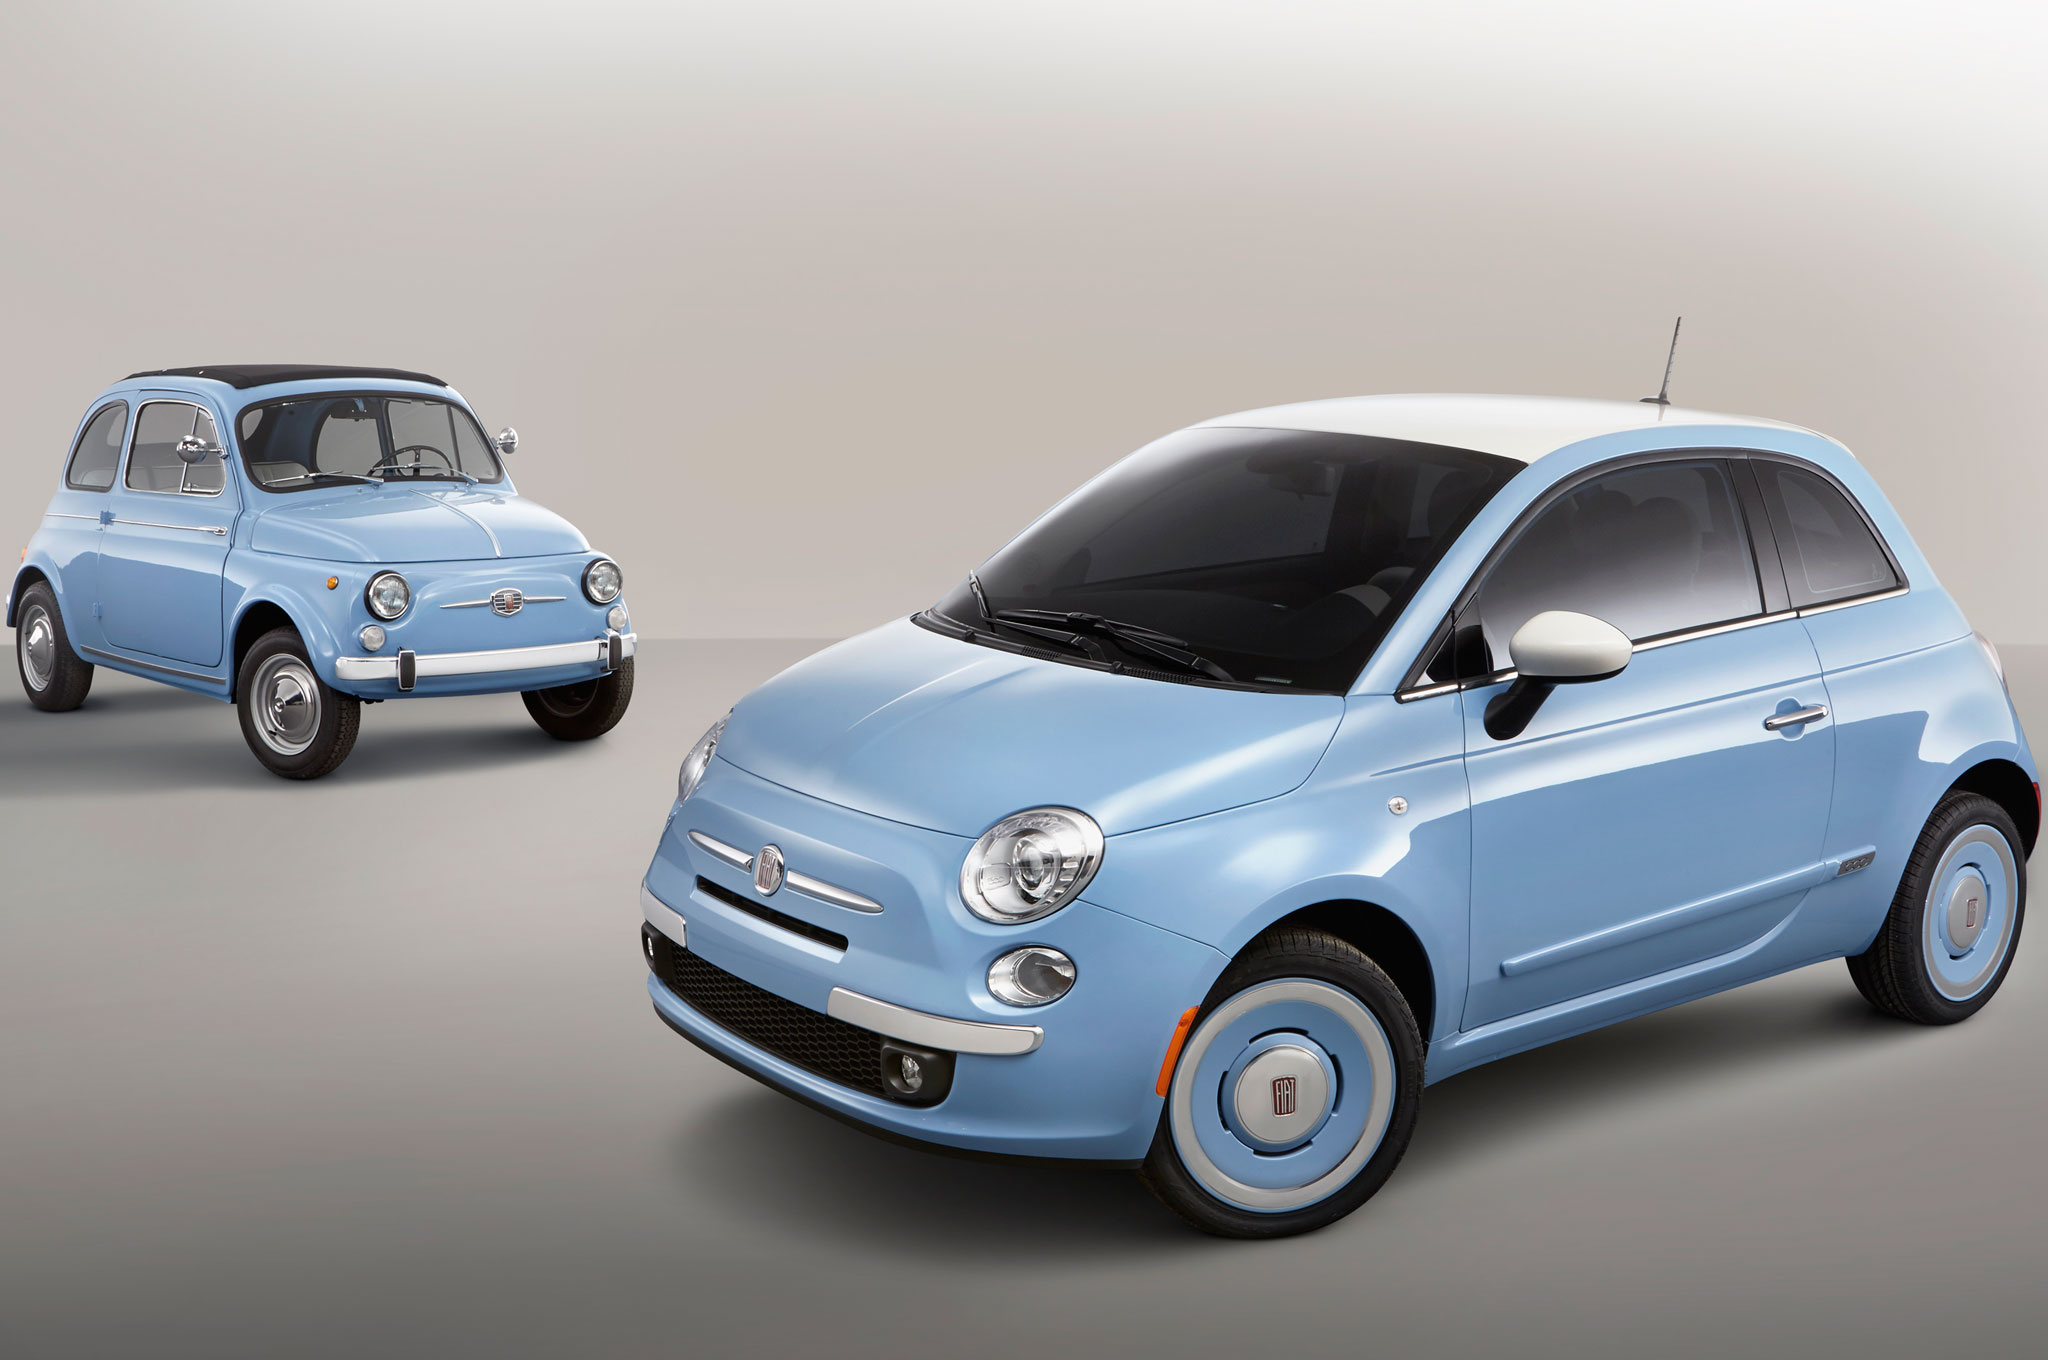 hight resolution of 2014 fiat 500 1957 edition celebrates nameplate s 57th anniversary